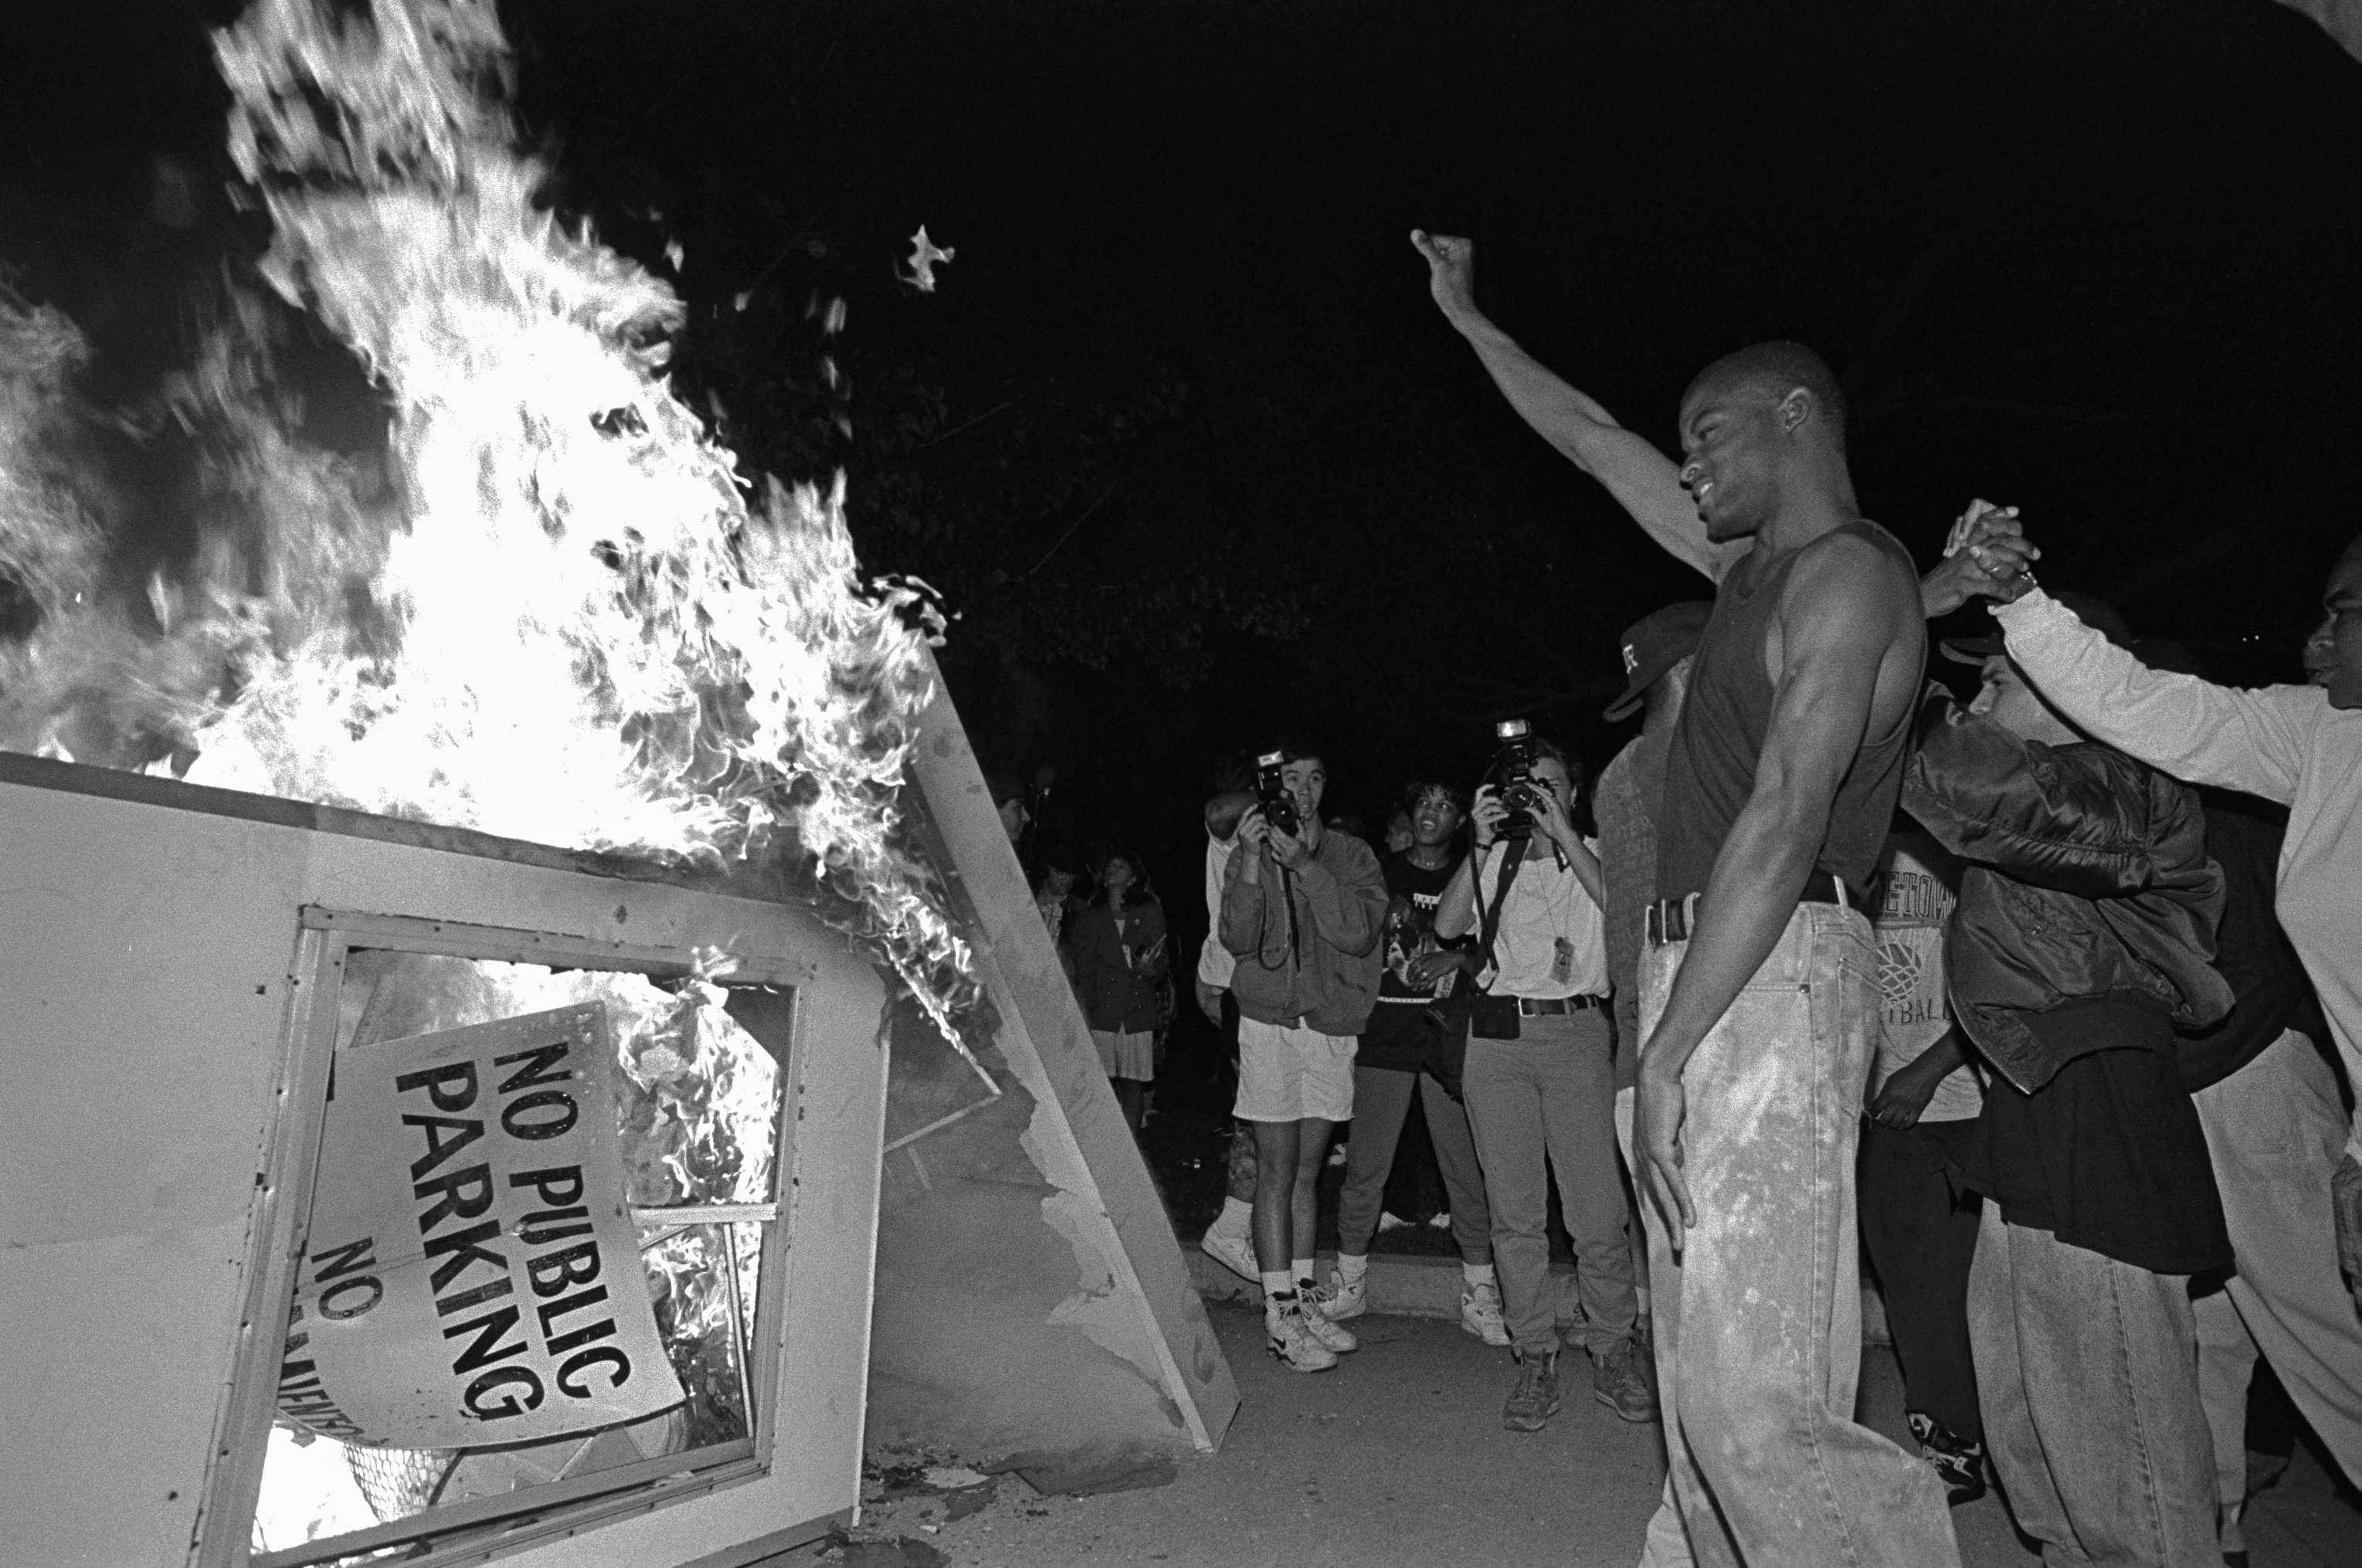 Rioters near Parker Center, LAPD headquarters in downtown Los Angeles, over turn a parking kiosk and set it ablaze. Los Angeles has undergone several days of rioting due to the acquittal of the LAPD officers who beat Rodney King. Hundreds of businesses were burned to the ground and over 55 people have been killed. (Photo by Ted Soqui/Corbis via Getty Images)